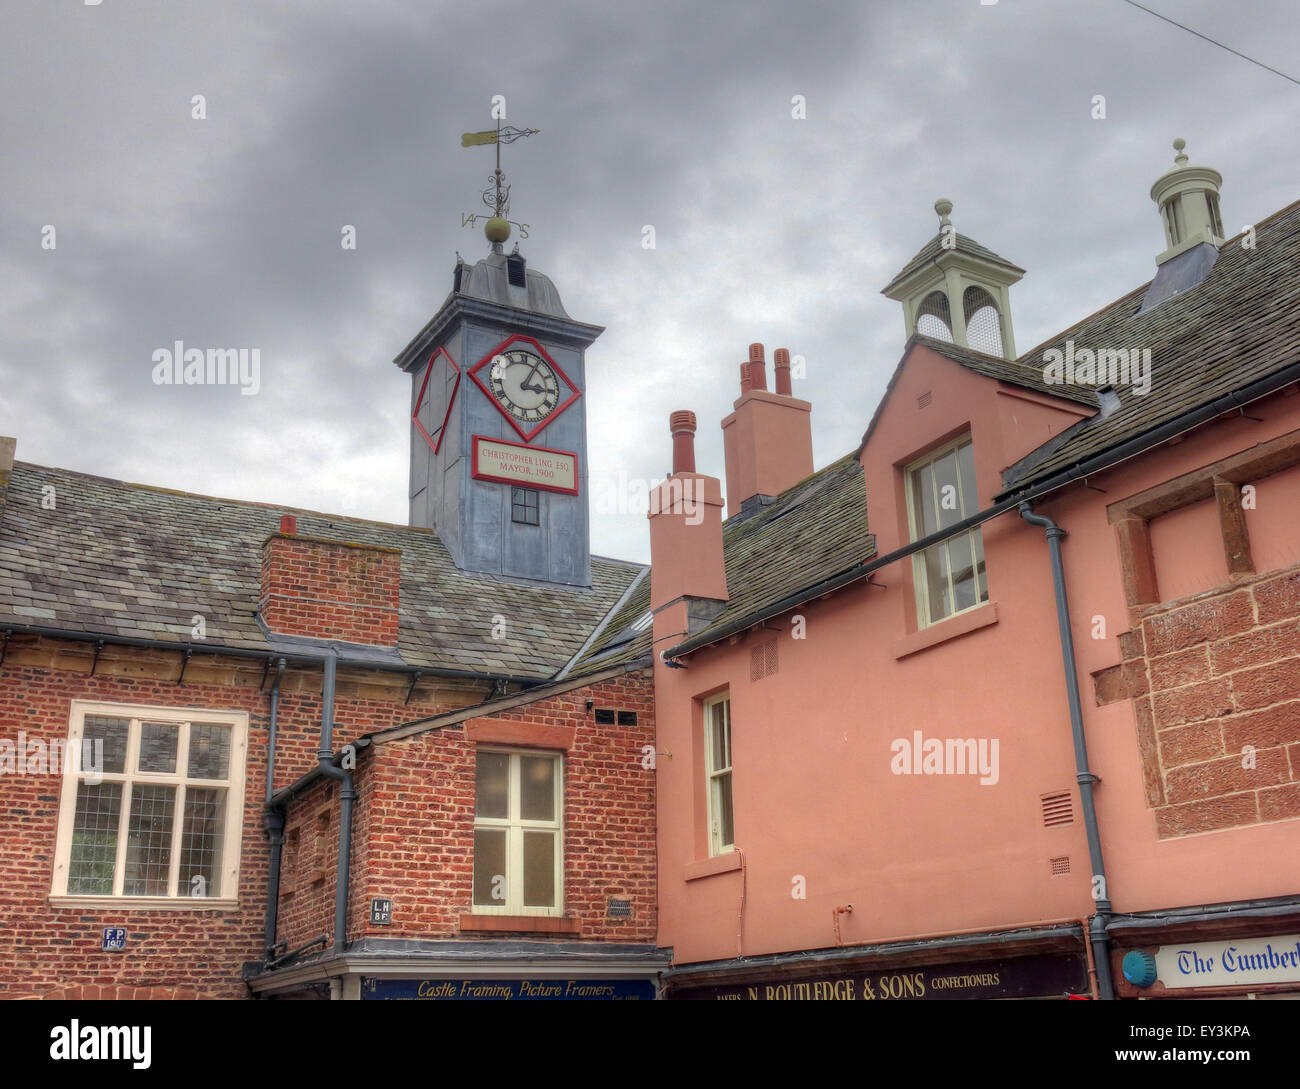 tower,clocktower,time,Carlisle,town,city,centre,building,buildings,1900,capital,lake,district,listed,GB,UK,United,Kingdom,Great,Britain,townhall,Toll,booth,CA38JE,green,border,City Centre,Town Hall,Town Hall Clock,TownHall Clock,Toll booth,Common Hall,Moot Hall,CA3 8JE,Green Market,GoTonySmith,Motehall,city's,Tourist,Information,Centre,TIC,architecture,border city,britain,building,heritage,history,square,street,town,tradition,Buy Pictures of,Buy Images Of,Tourist Information Centre,town hall,Border City